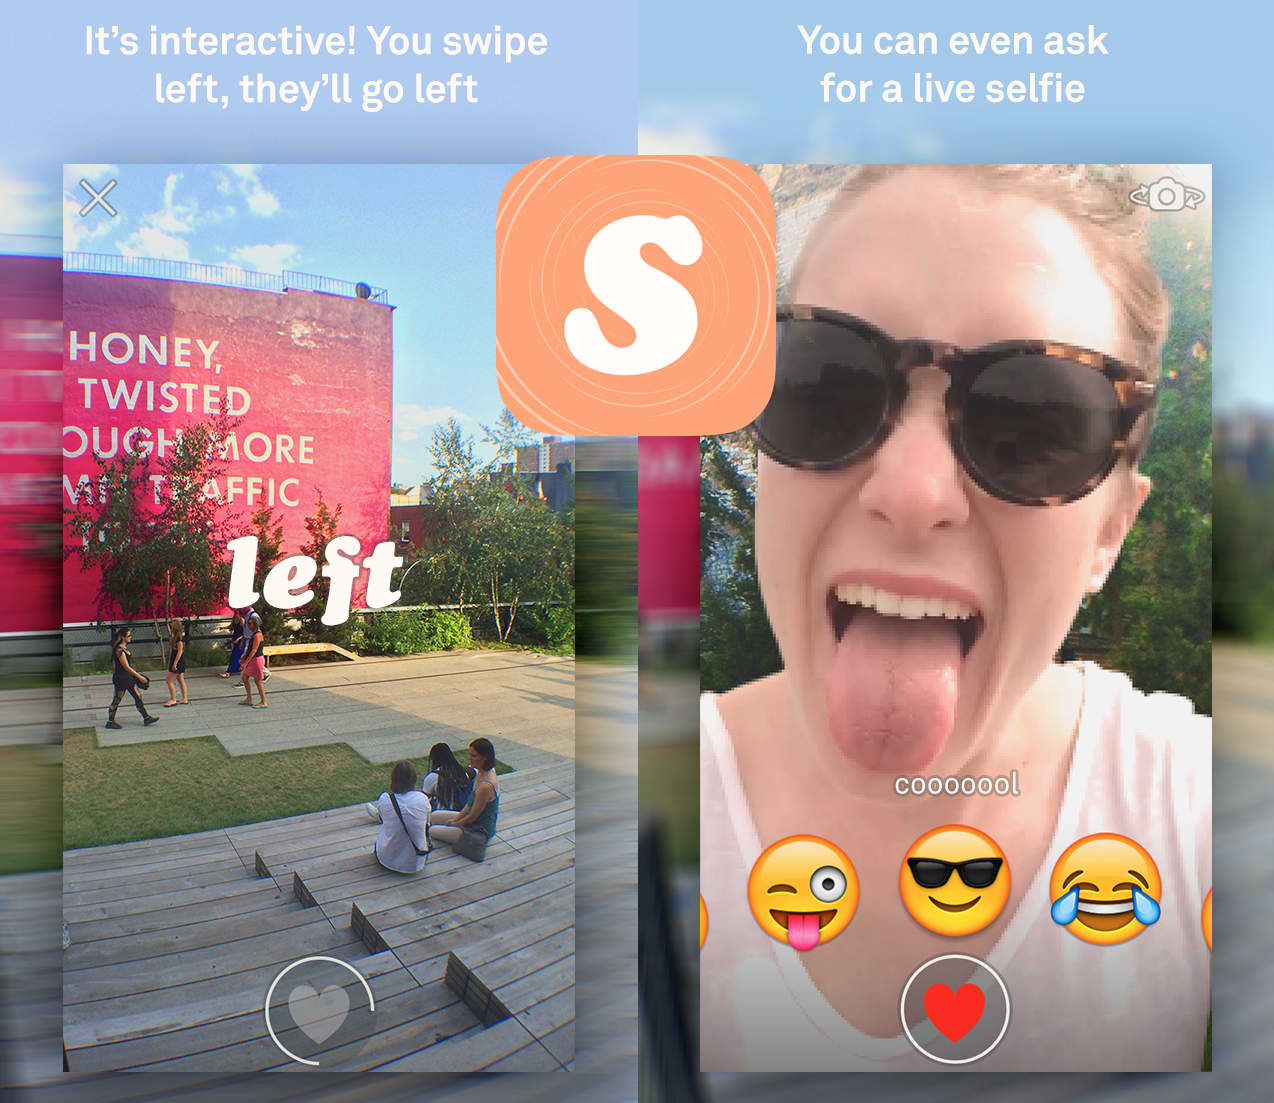 Sup – Remote Control Your Friends With Video